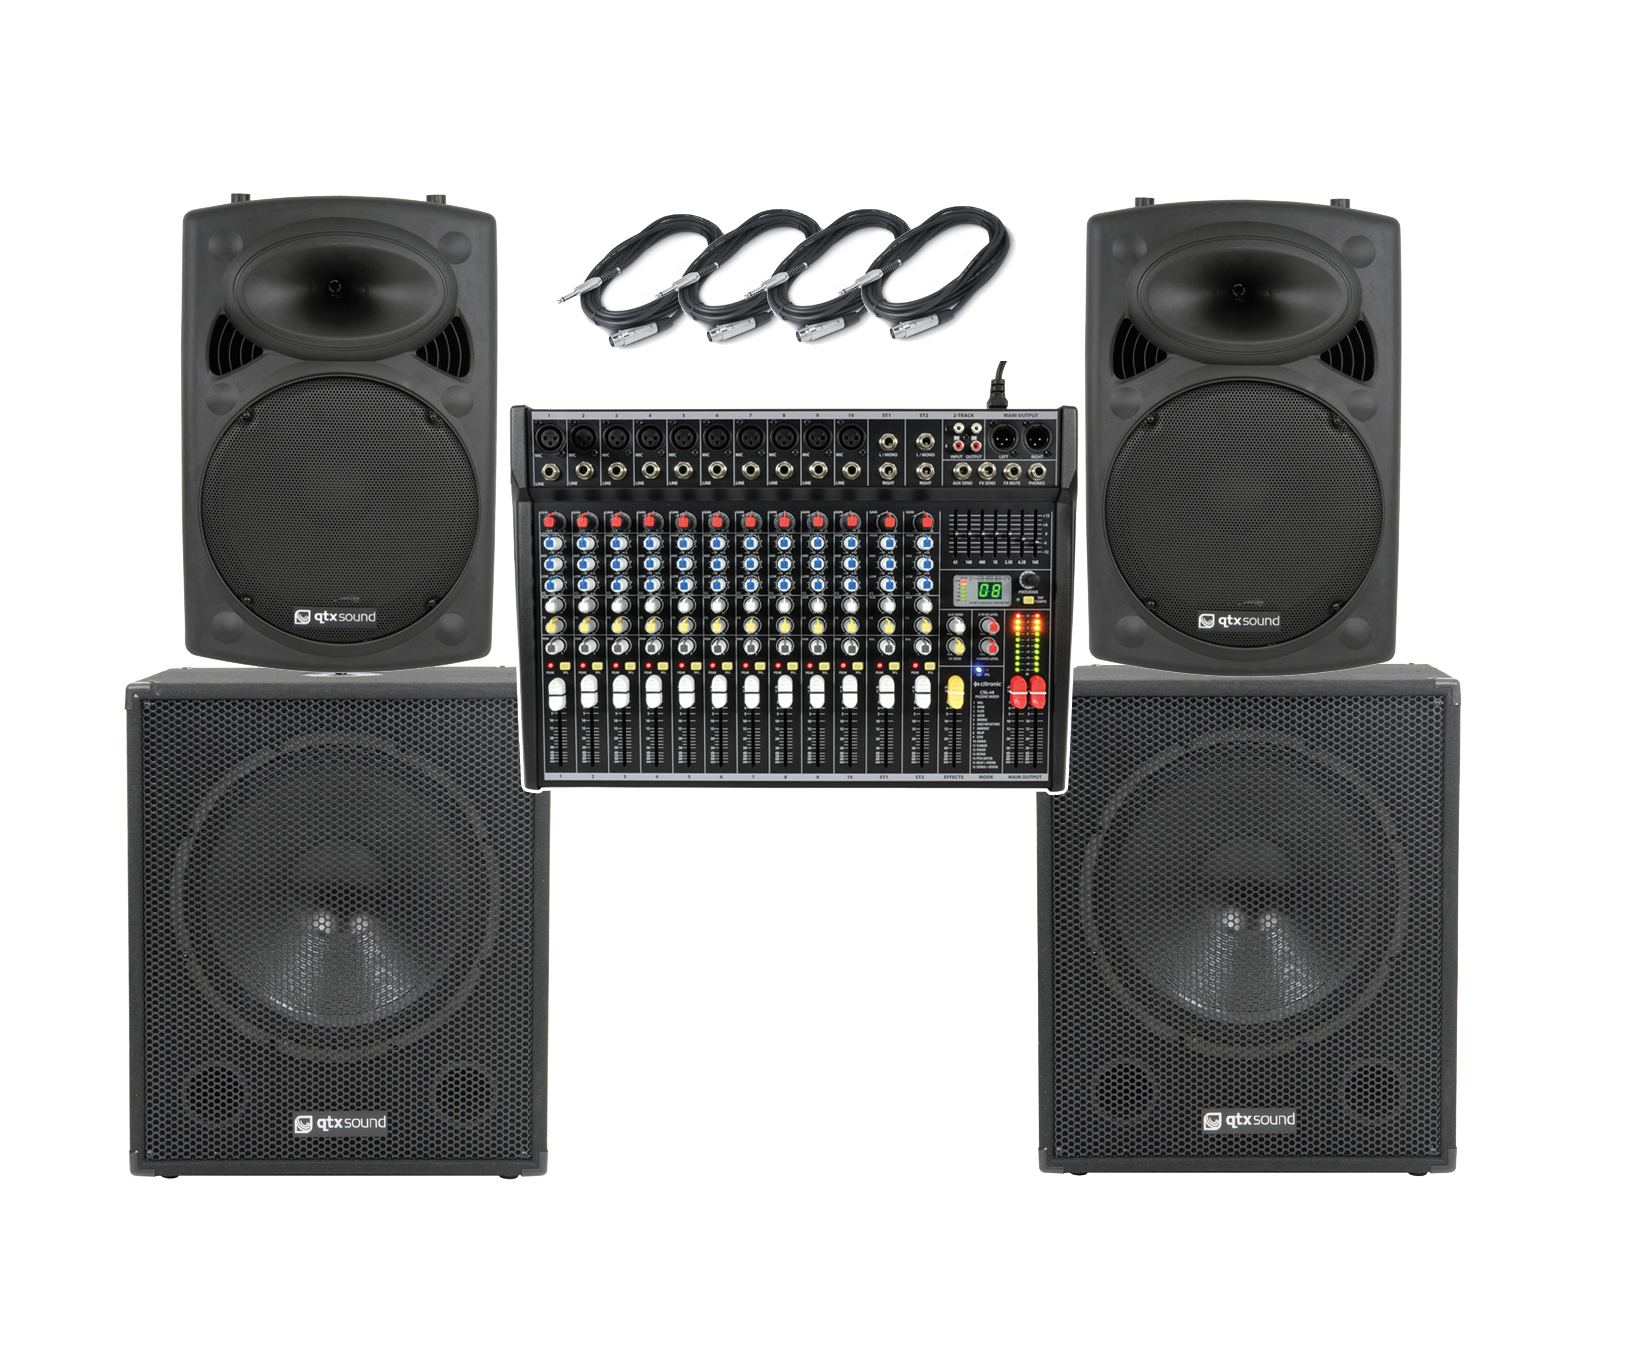 apa series bare essentials big band pa system 14 channel 2800w astounded. Black Bedroom Furniture Sets. Home Design Ideas